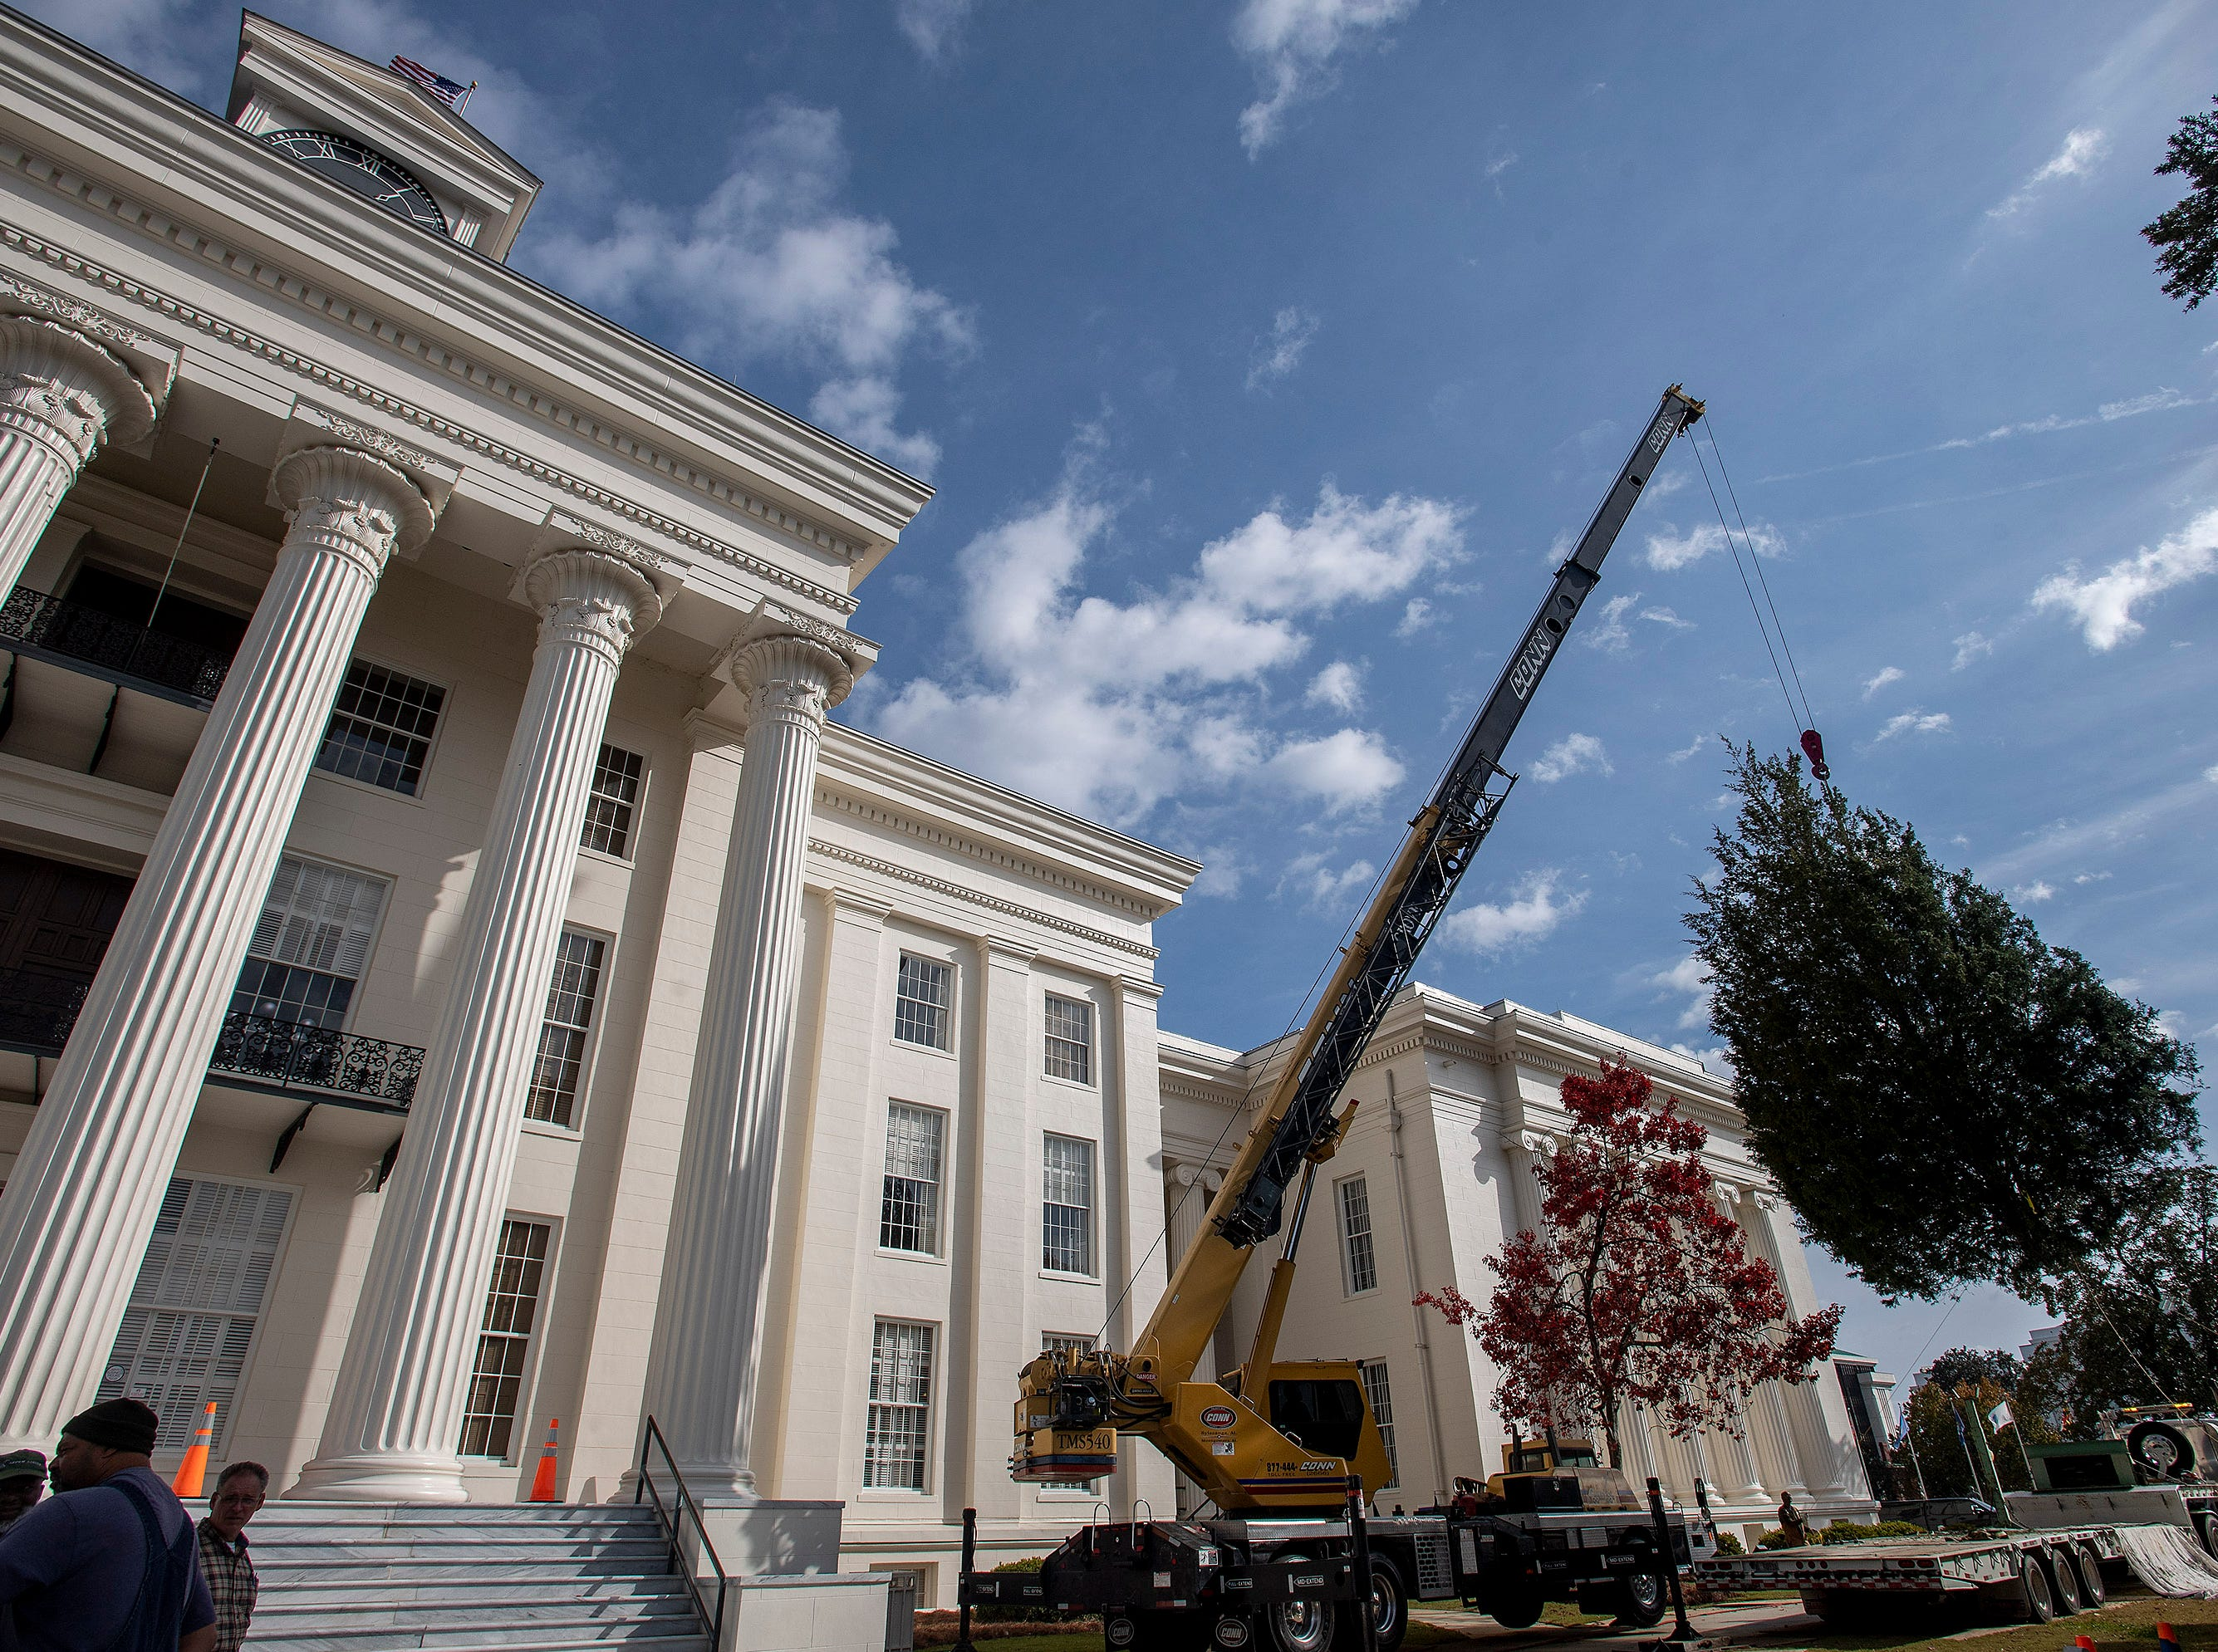 A crane is used to install the State Capitol Christmas Tree on the state capitol steps in Montgomery, Ala., on Thursday November 29, 2018. The tree will be decorated next week and the Tree Lighting will be held on Friday December 7.